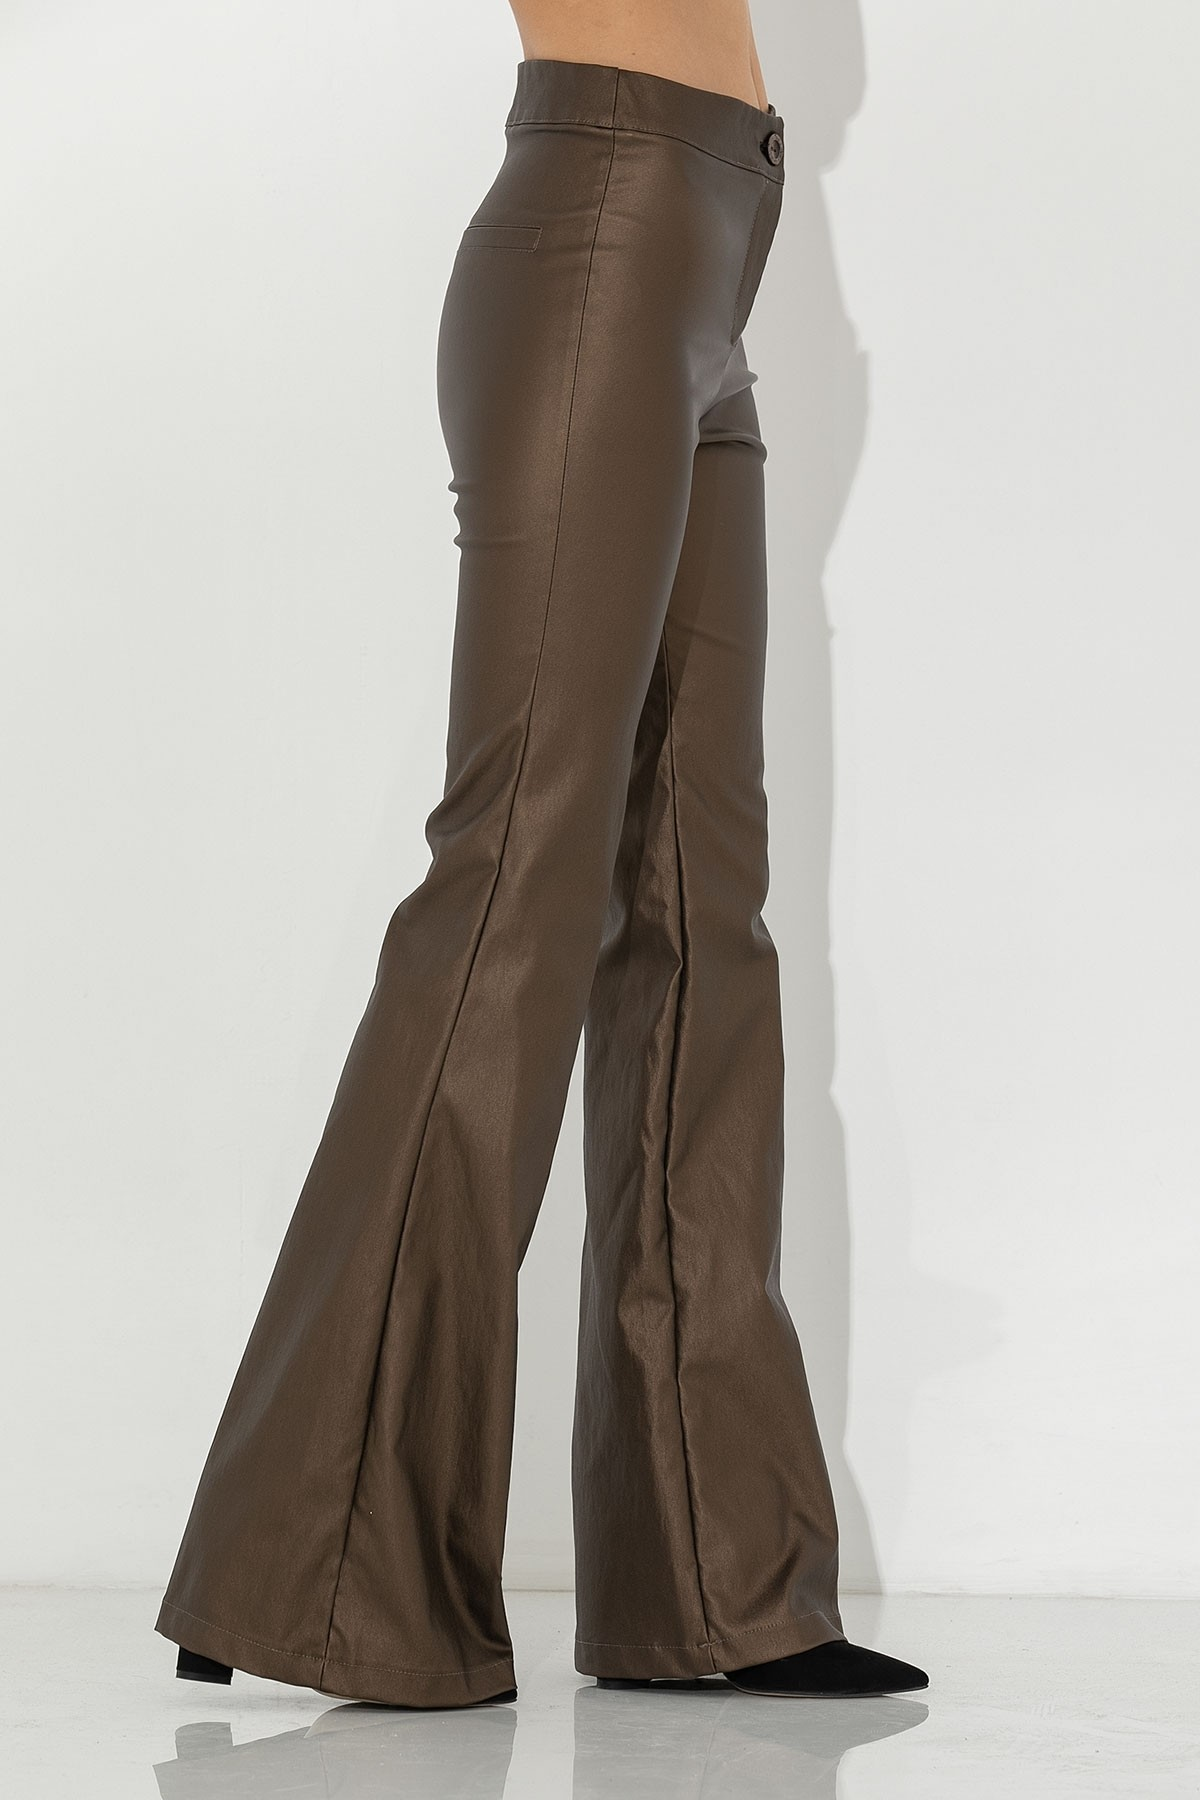 METALLIC GOLD FLARED TROUSERS